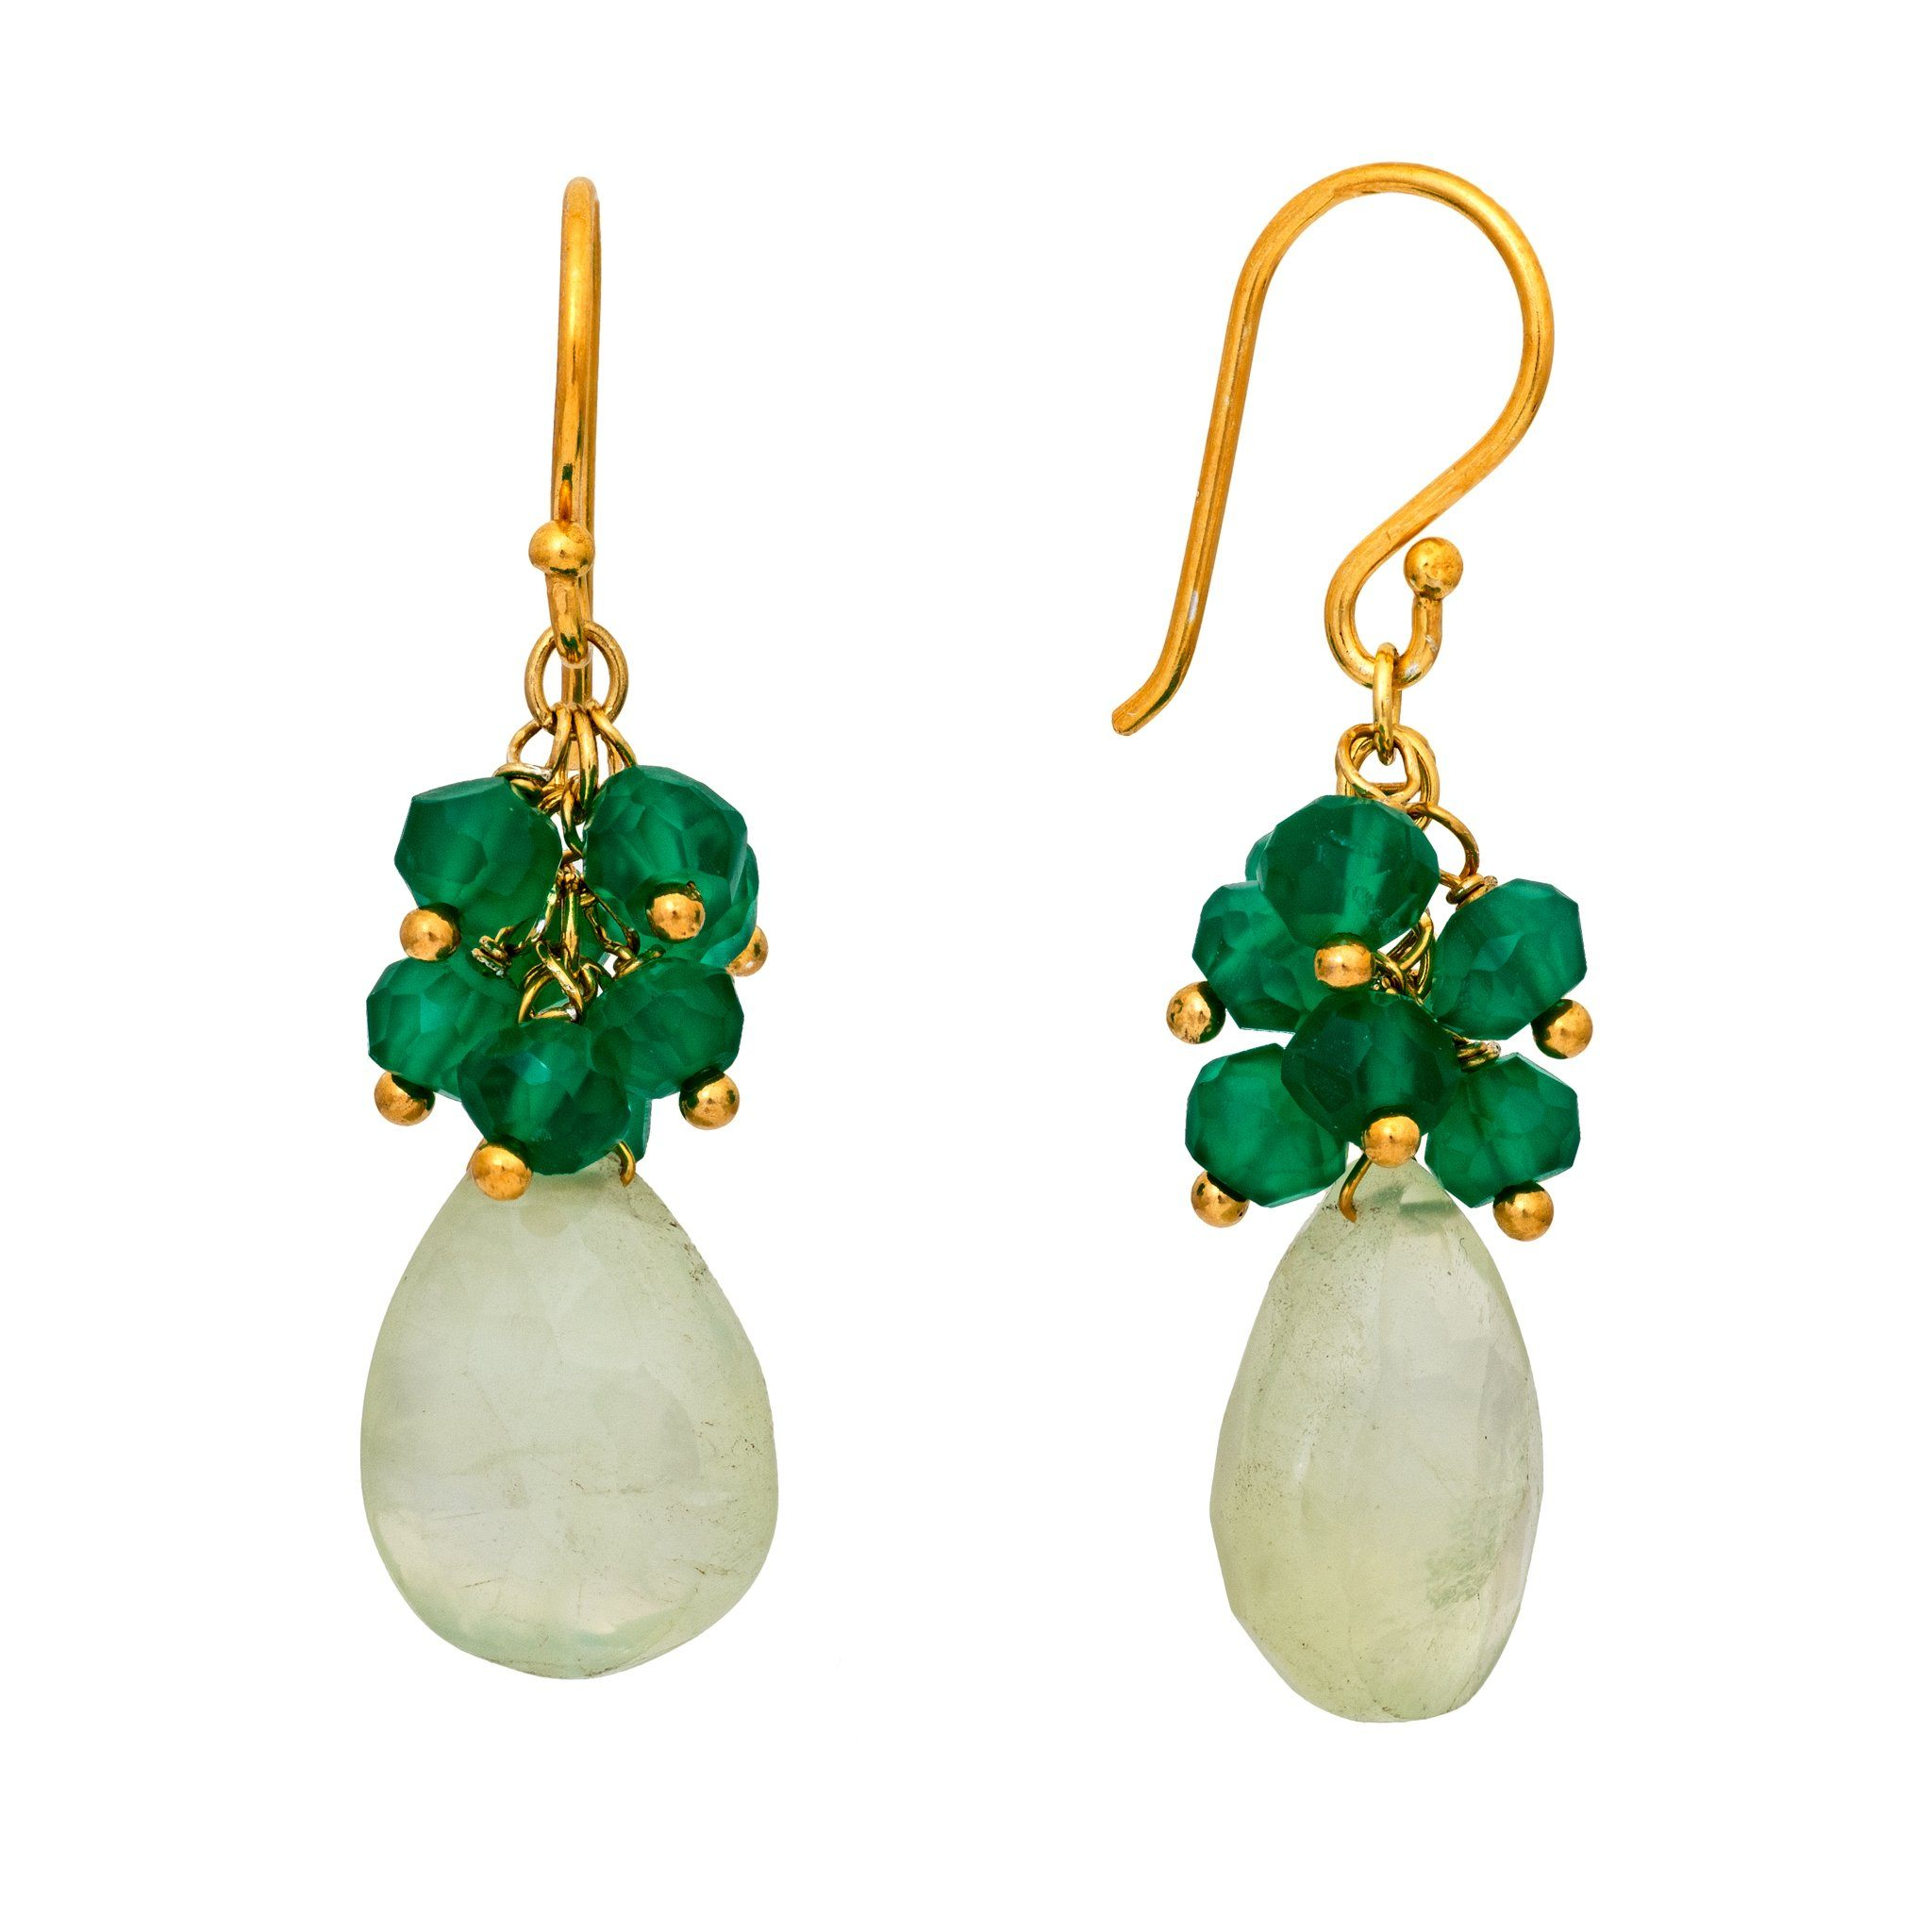 GRAPA green onyx cluster earrings - MadamSiam